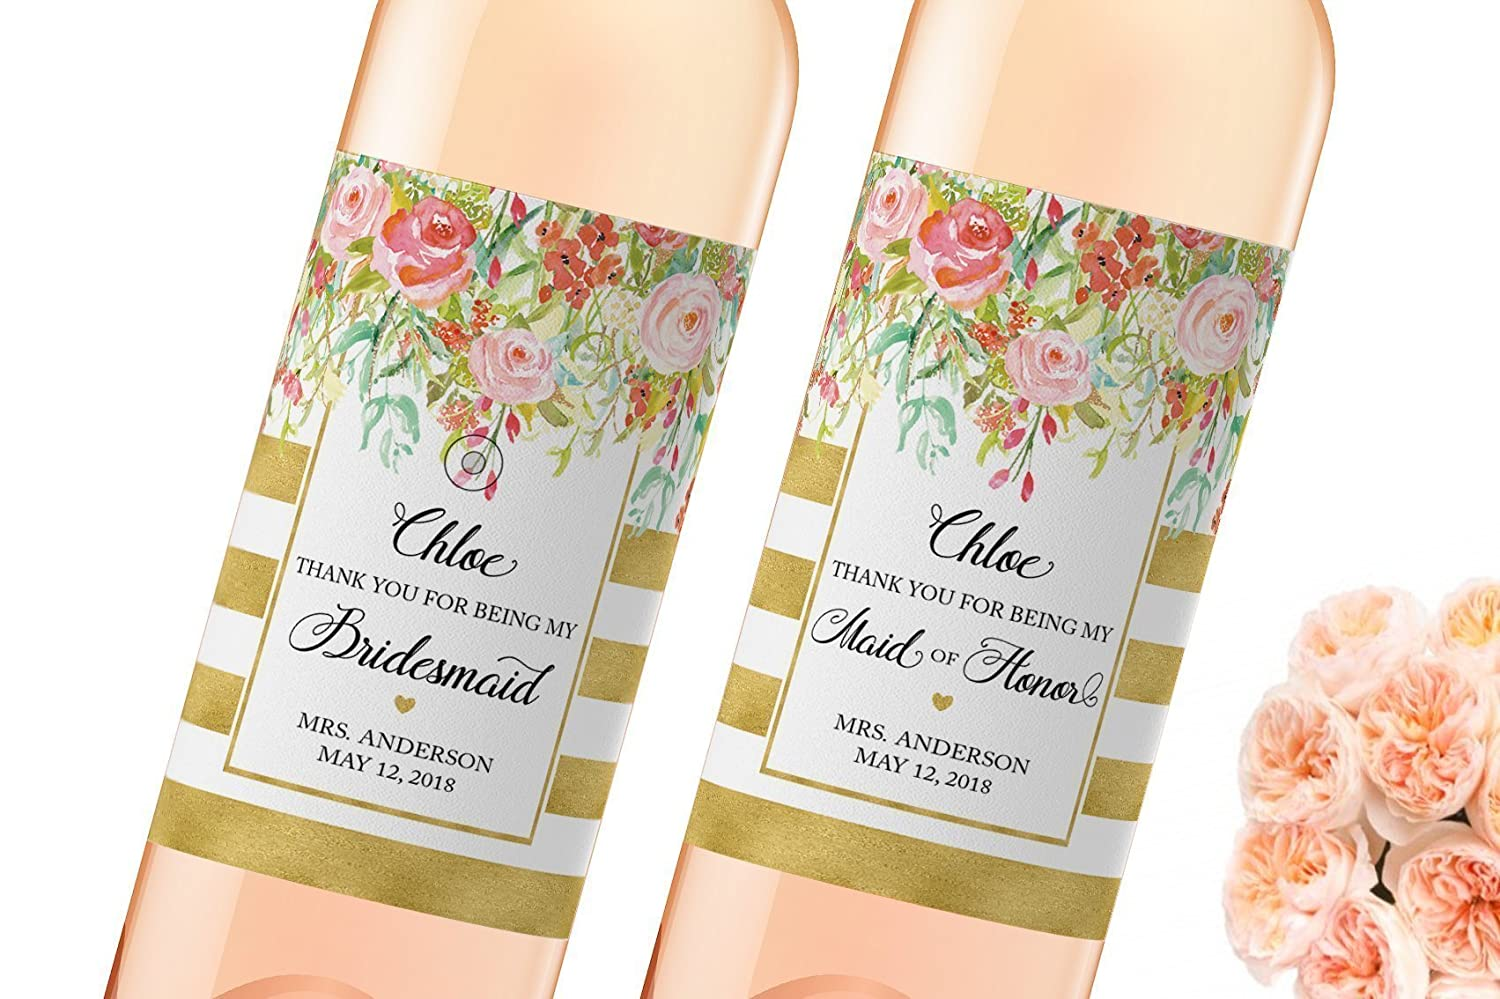 PERSONALISED BRIDESMAID WINE LABEL OR SPIRIT THANK YOU FOR BEING MY BRIDESMAID